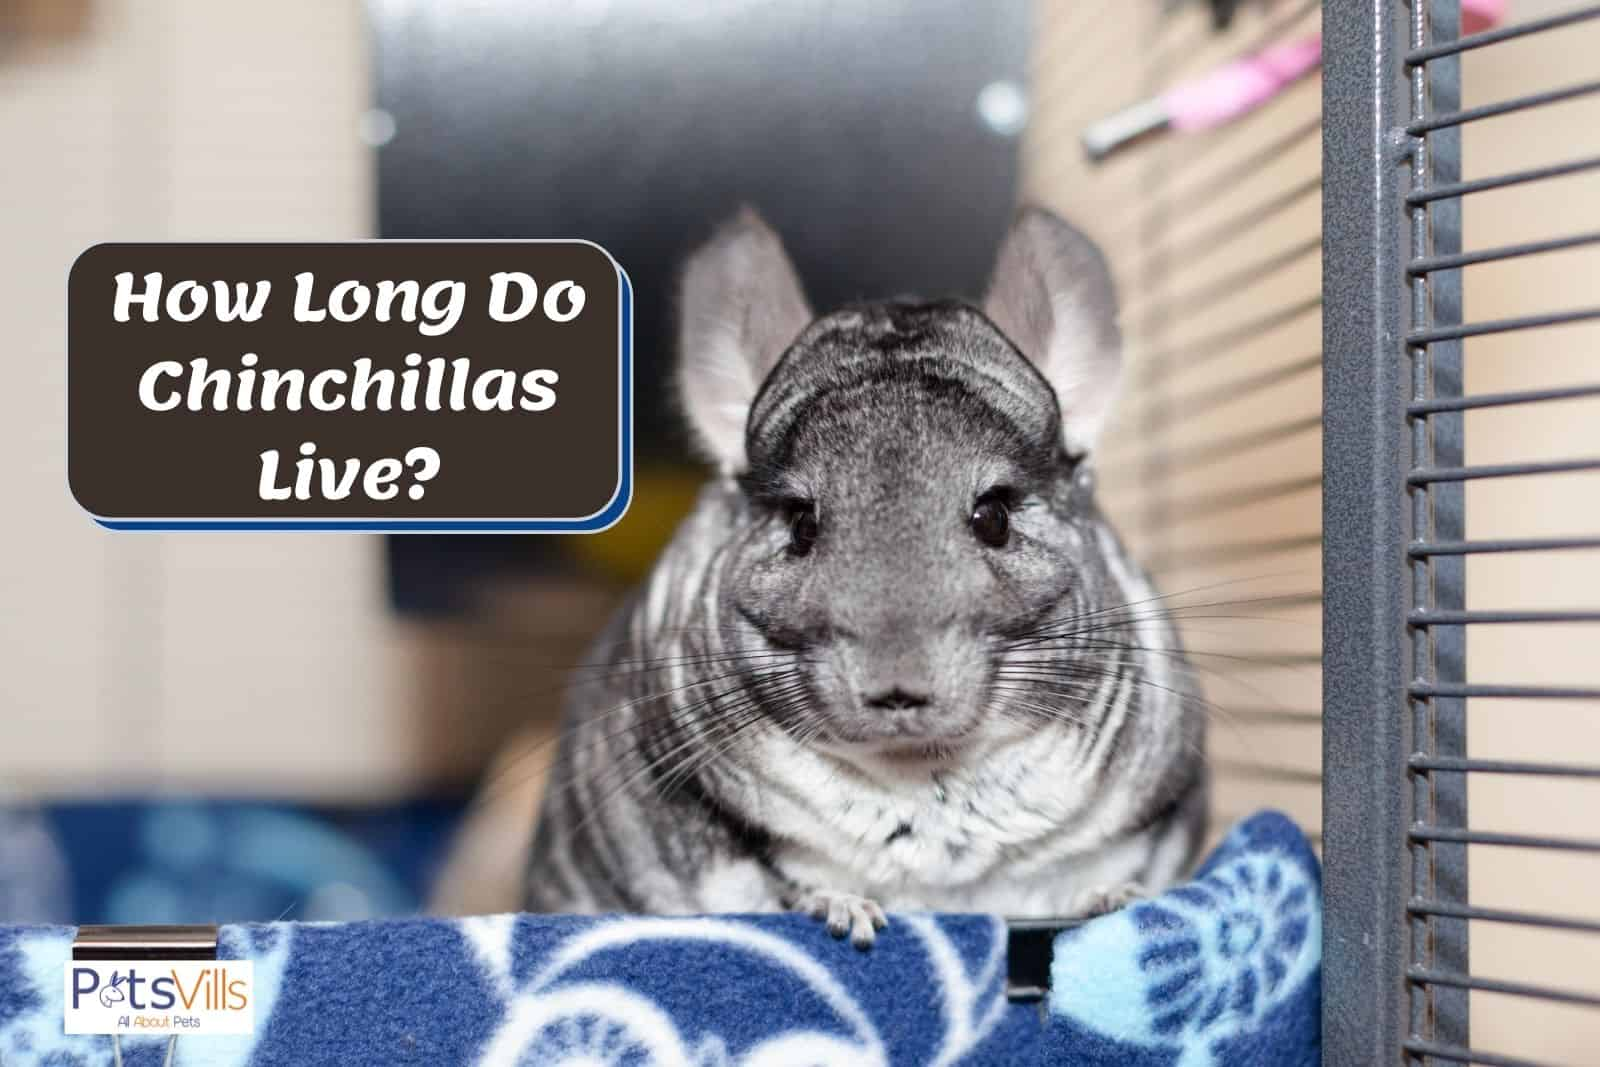 a chinchilla at home, how long do chinchillas live